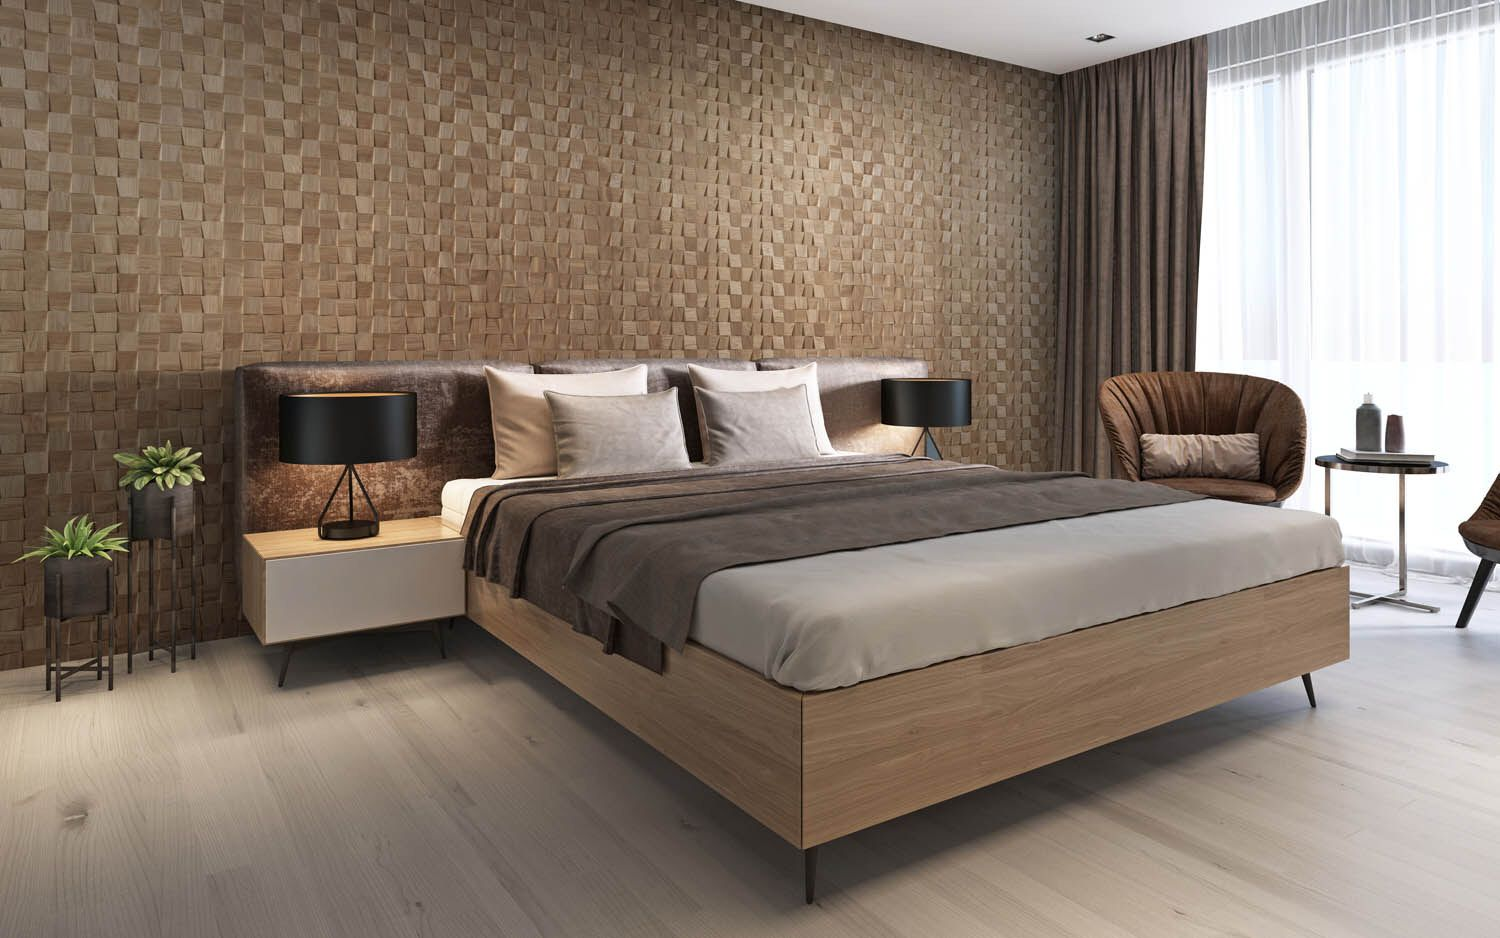 Wooden Wall Panels By Audrini Living Uk Wooden Wall Panels Wood Panel Walls Wooden Walls